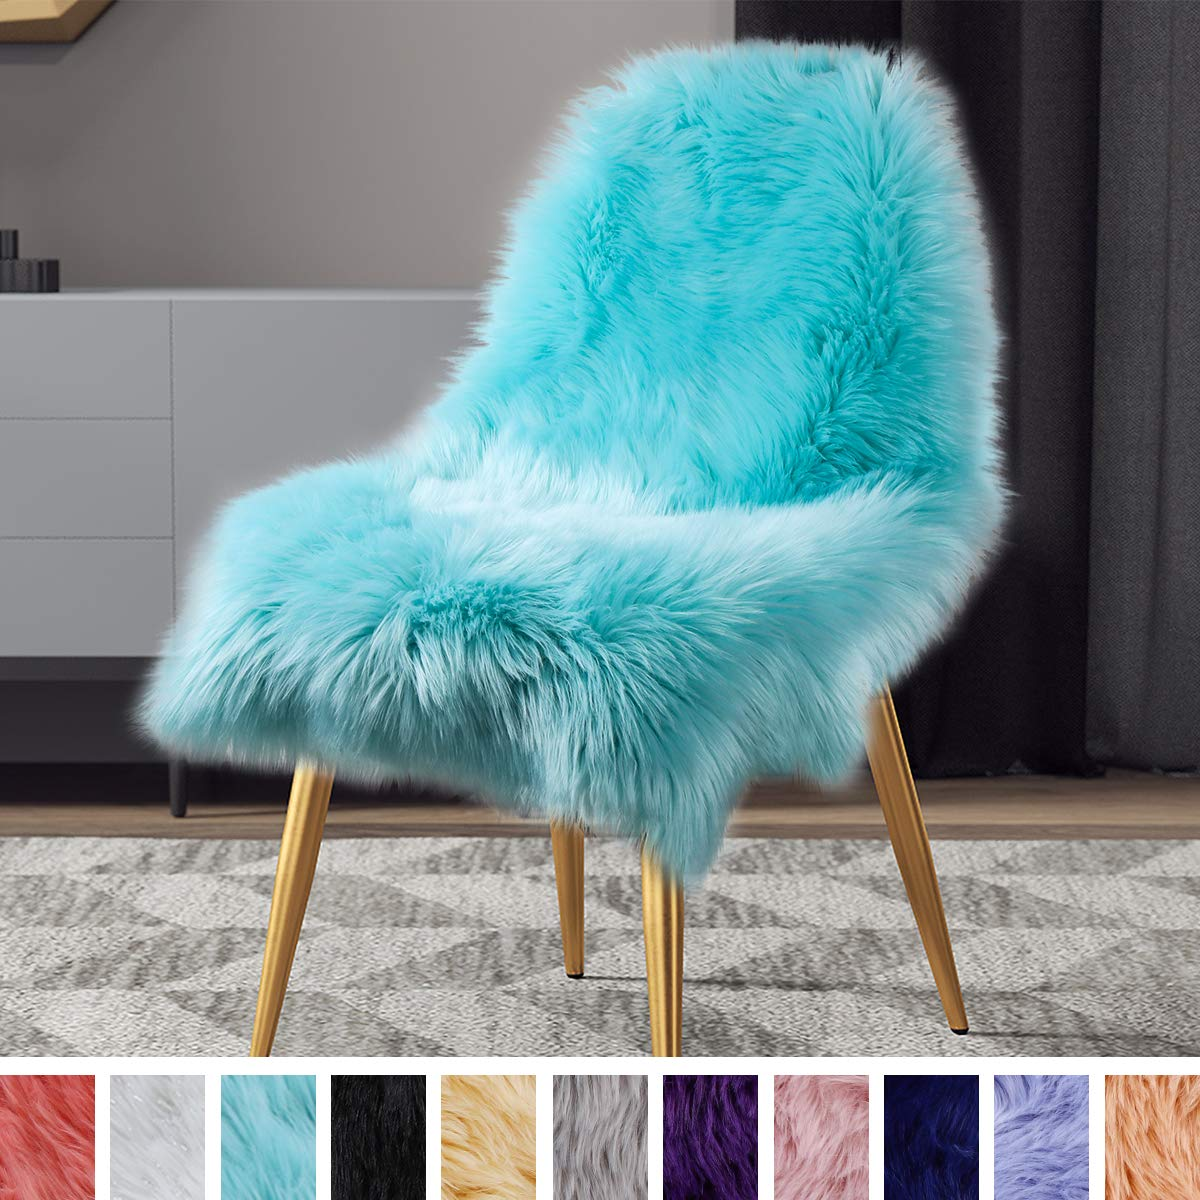 LOCHAS Soft Faux Sheepskin Chair Cover Fluffy Rugs for Bedroom Faux Fur Area Rugs Photography Carpet Floor, 2x3 Feet Light Blue